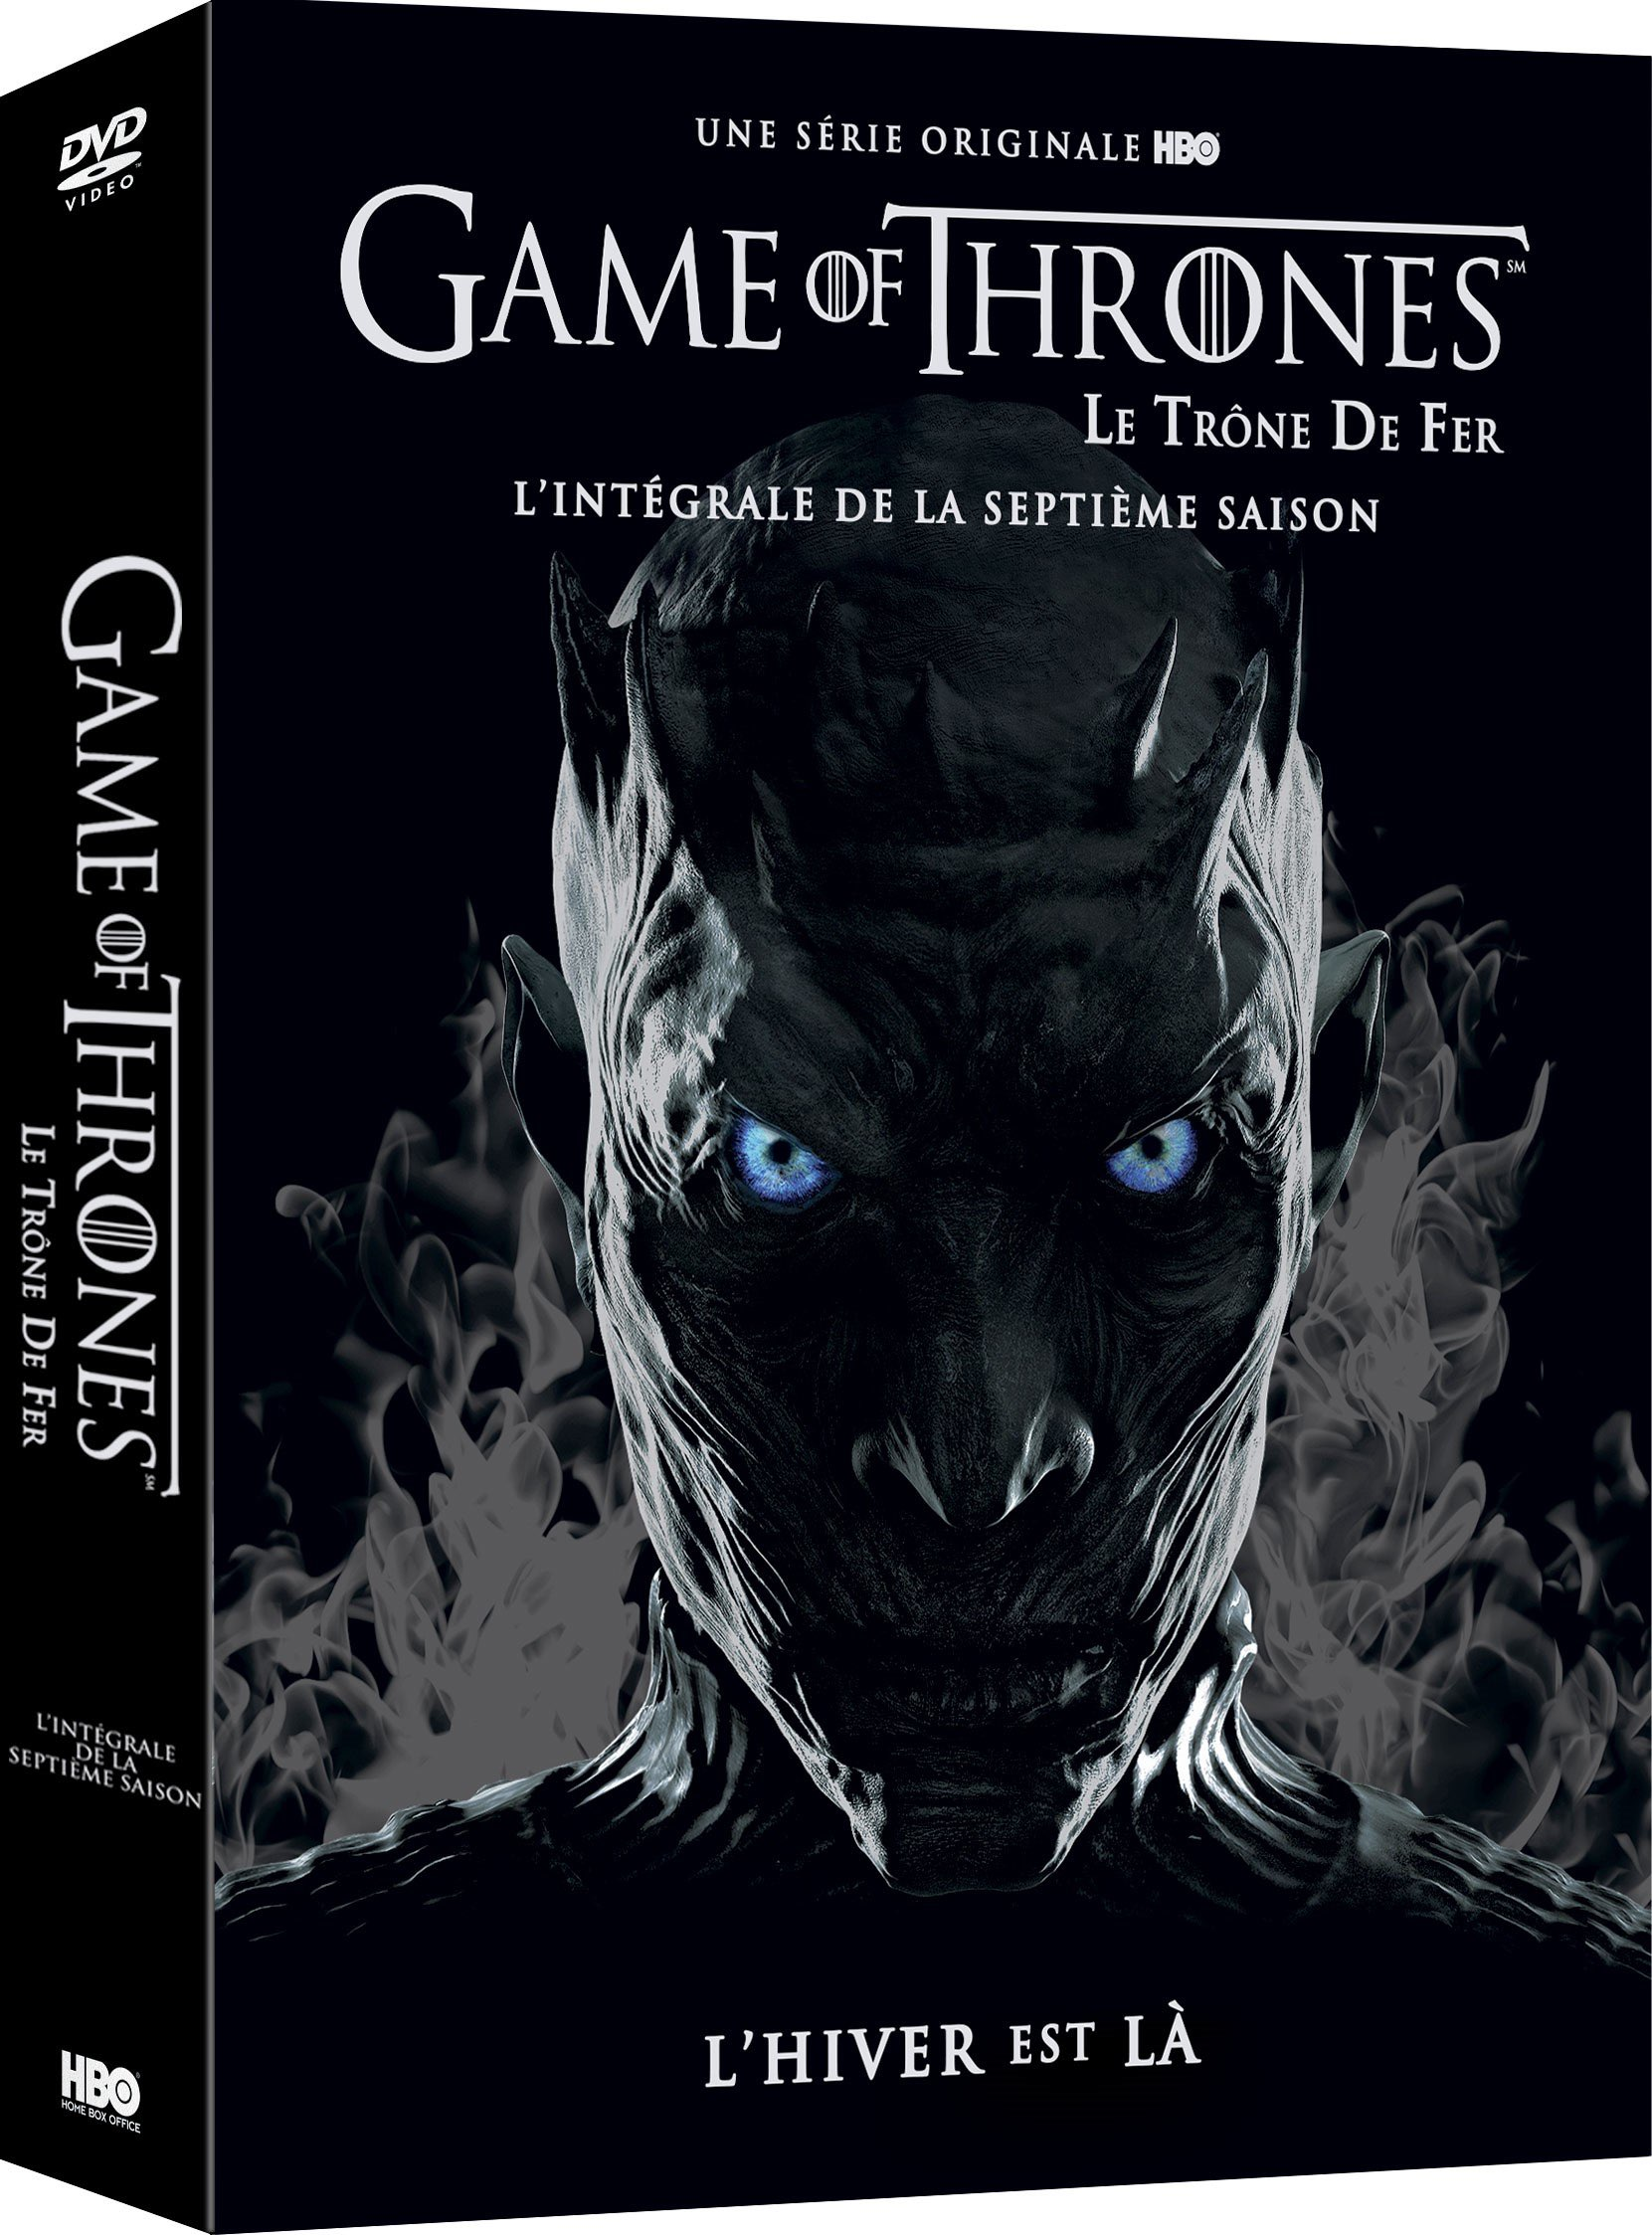 Game of thrones (07) : Game of Thrones : Le Thrône de Fer, L'Hiver est là. 07